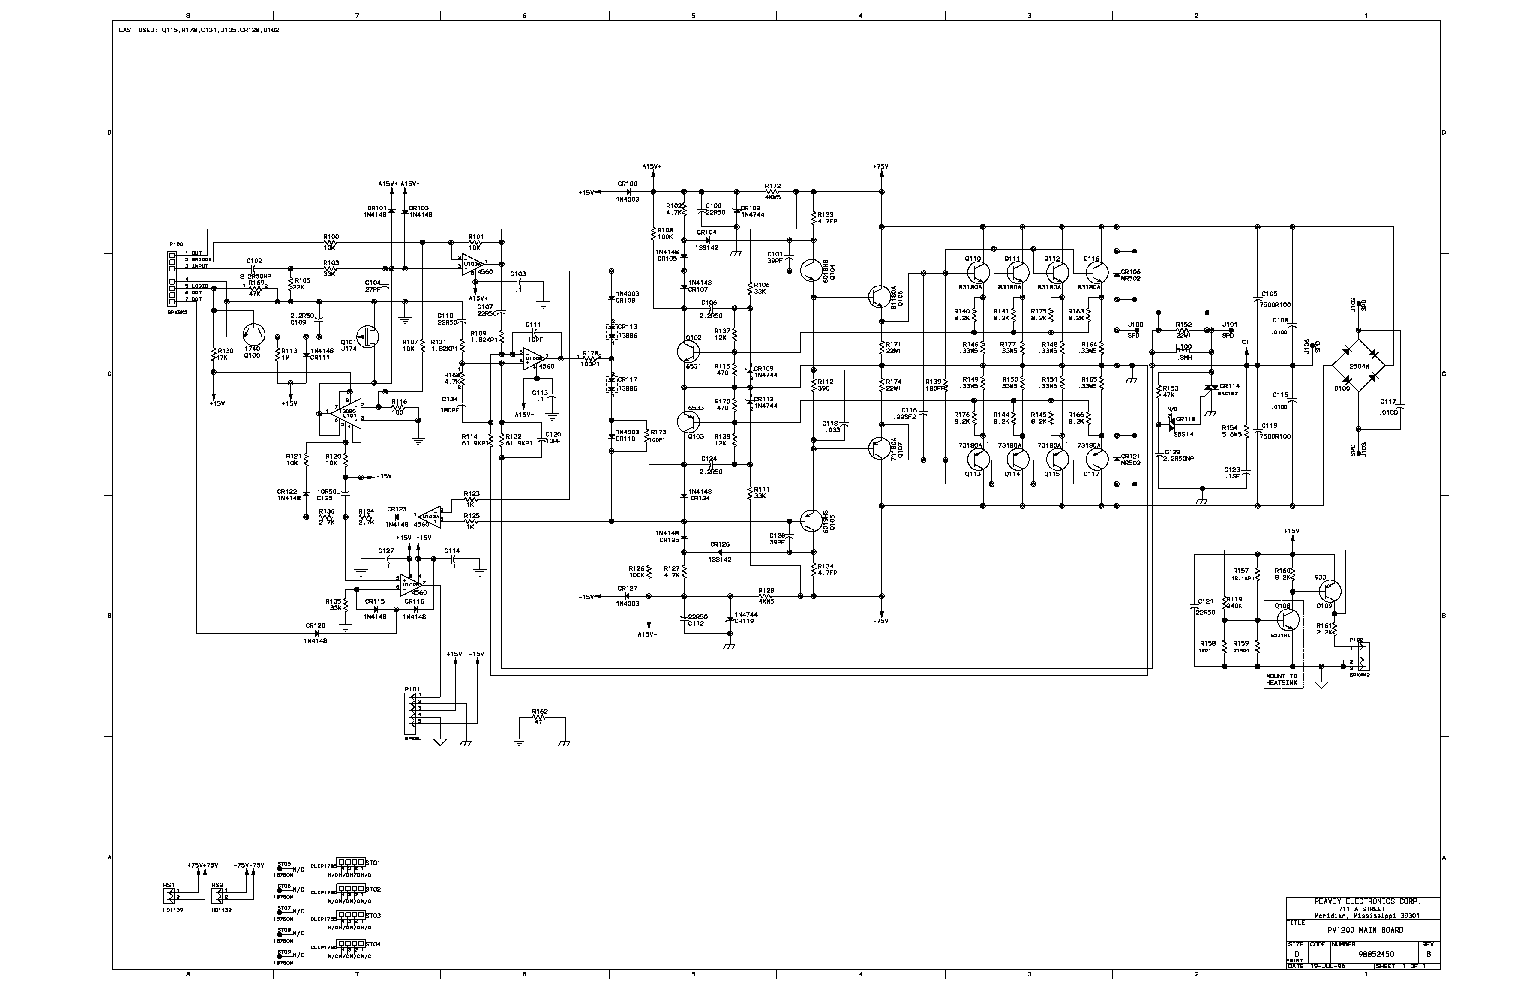 Wiring Diagram For Peavey Amplifier Page 5 And At Amp T U Verse Nid Jsx Schematic Enthusiast Diagrams U2022 Rh Rasalibre Co Head